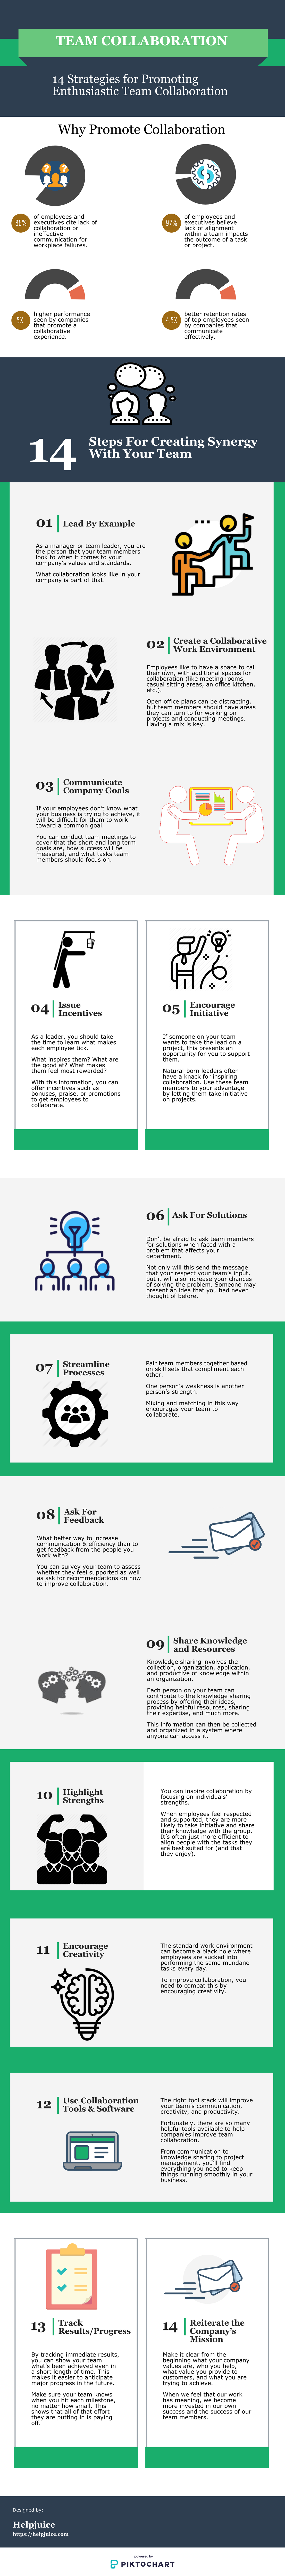 14 Strategies for Promoting Enthusiastic Team Collaboration